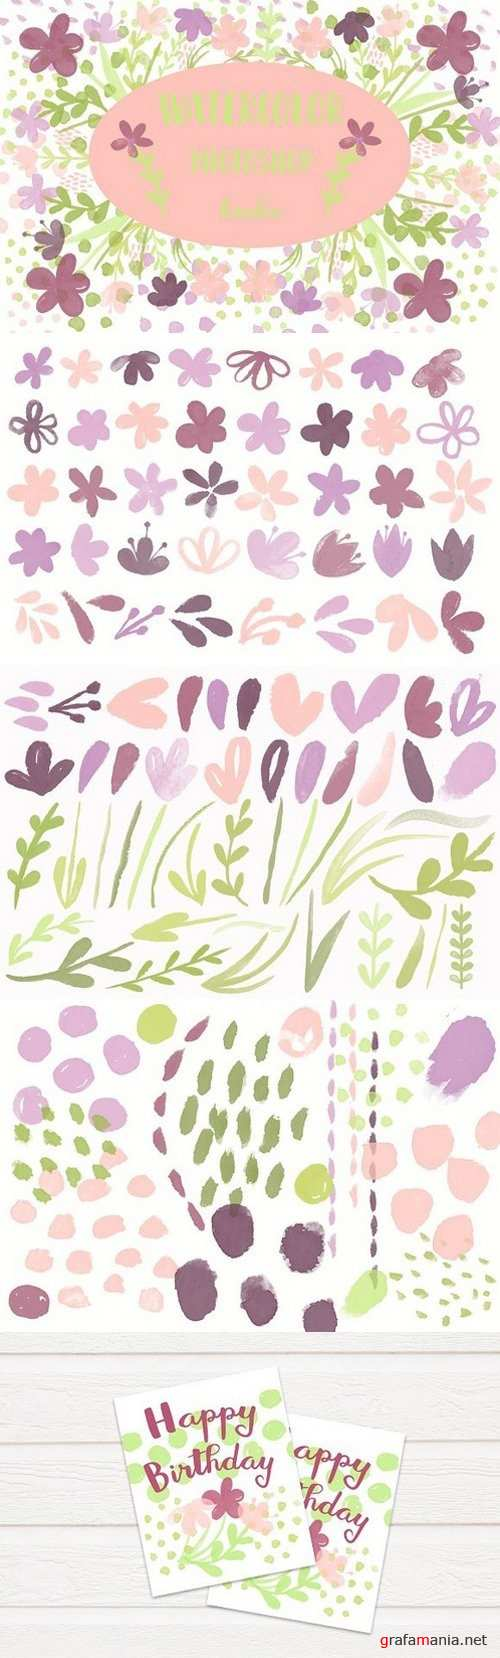 100 Watercolor Photoshop Brushes 1729738